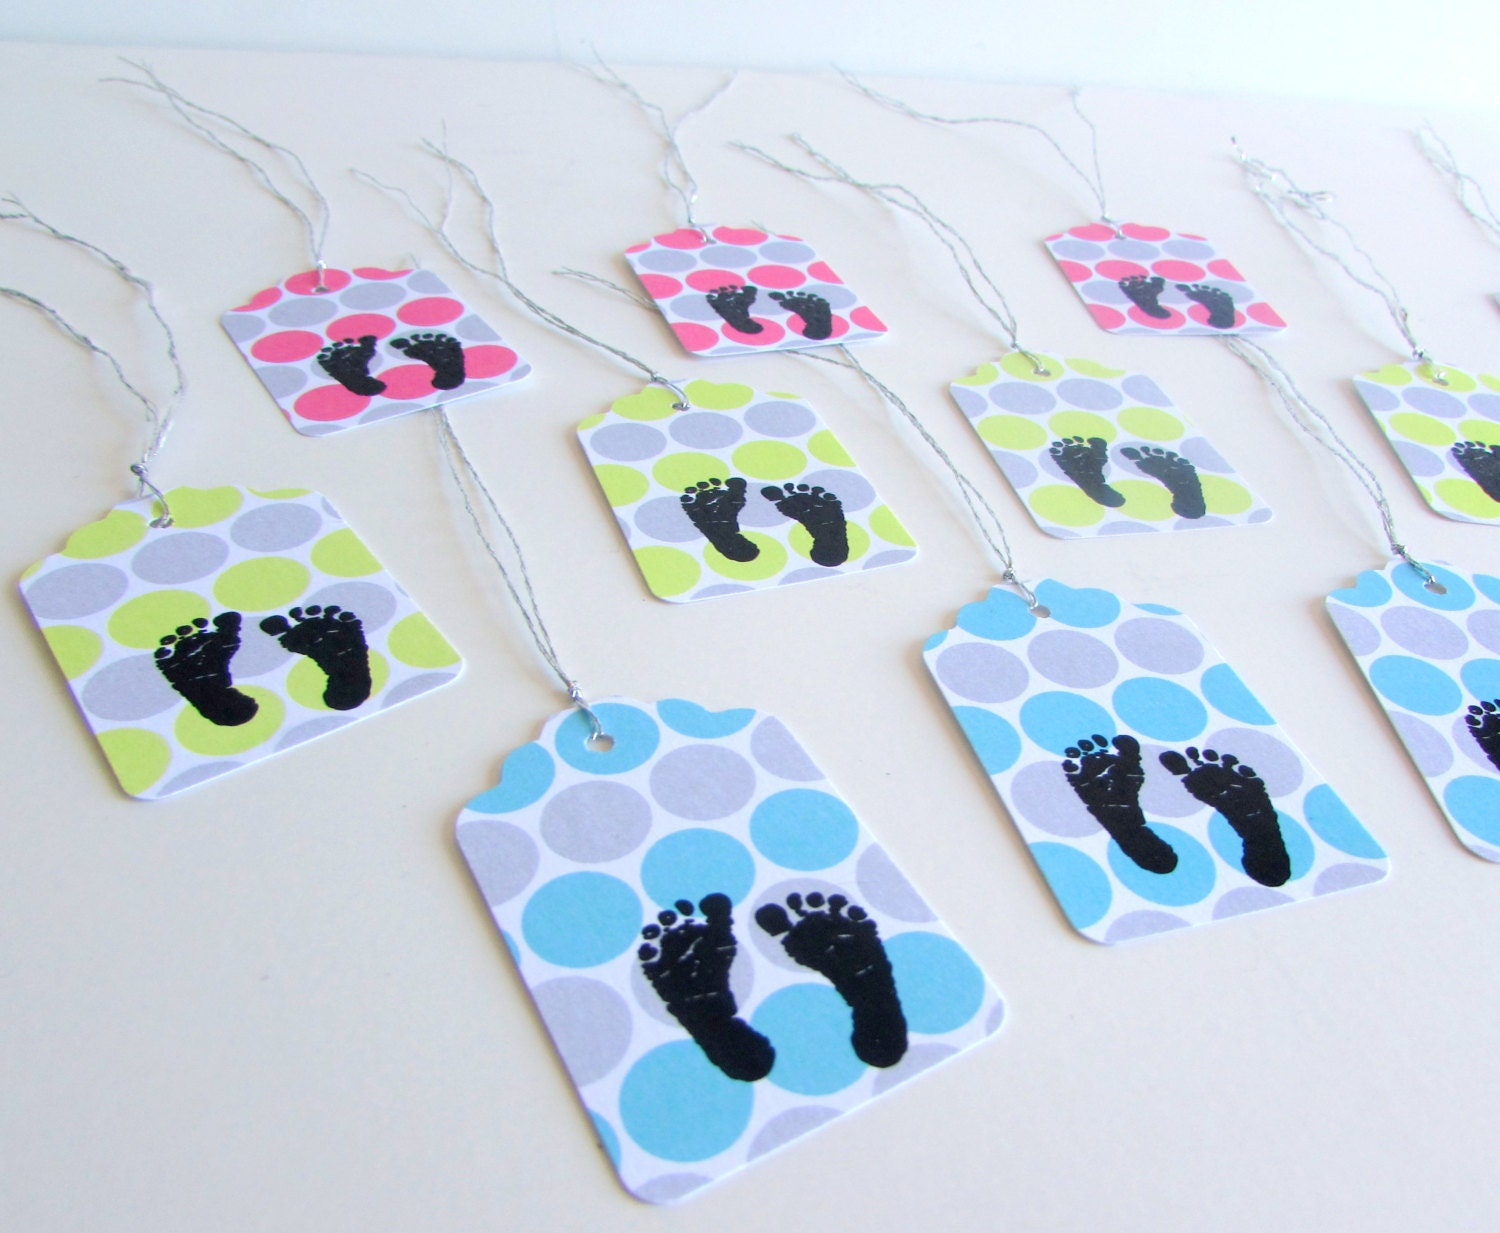 New Baby Boy Gift Tag : Baby shower favor tags feet gift gender reveal